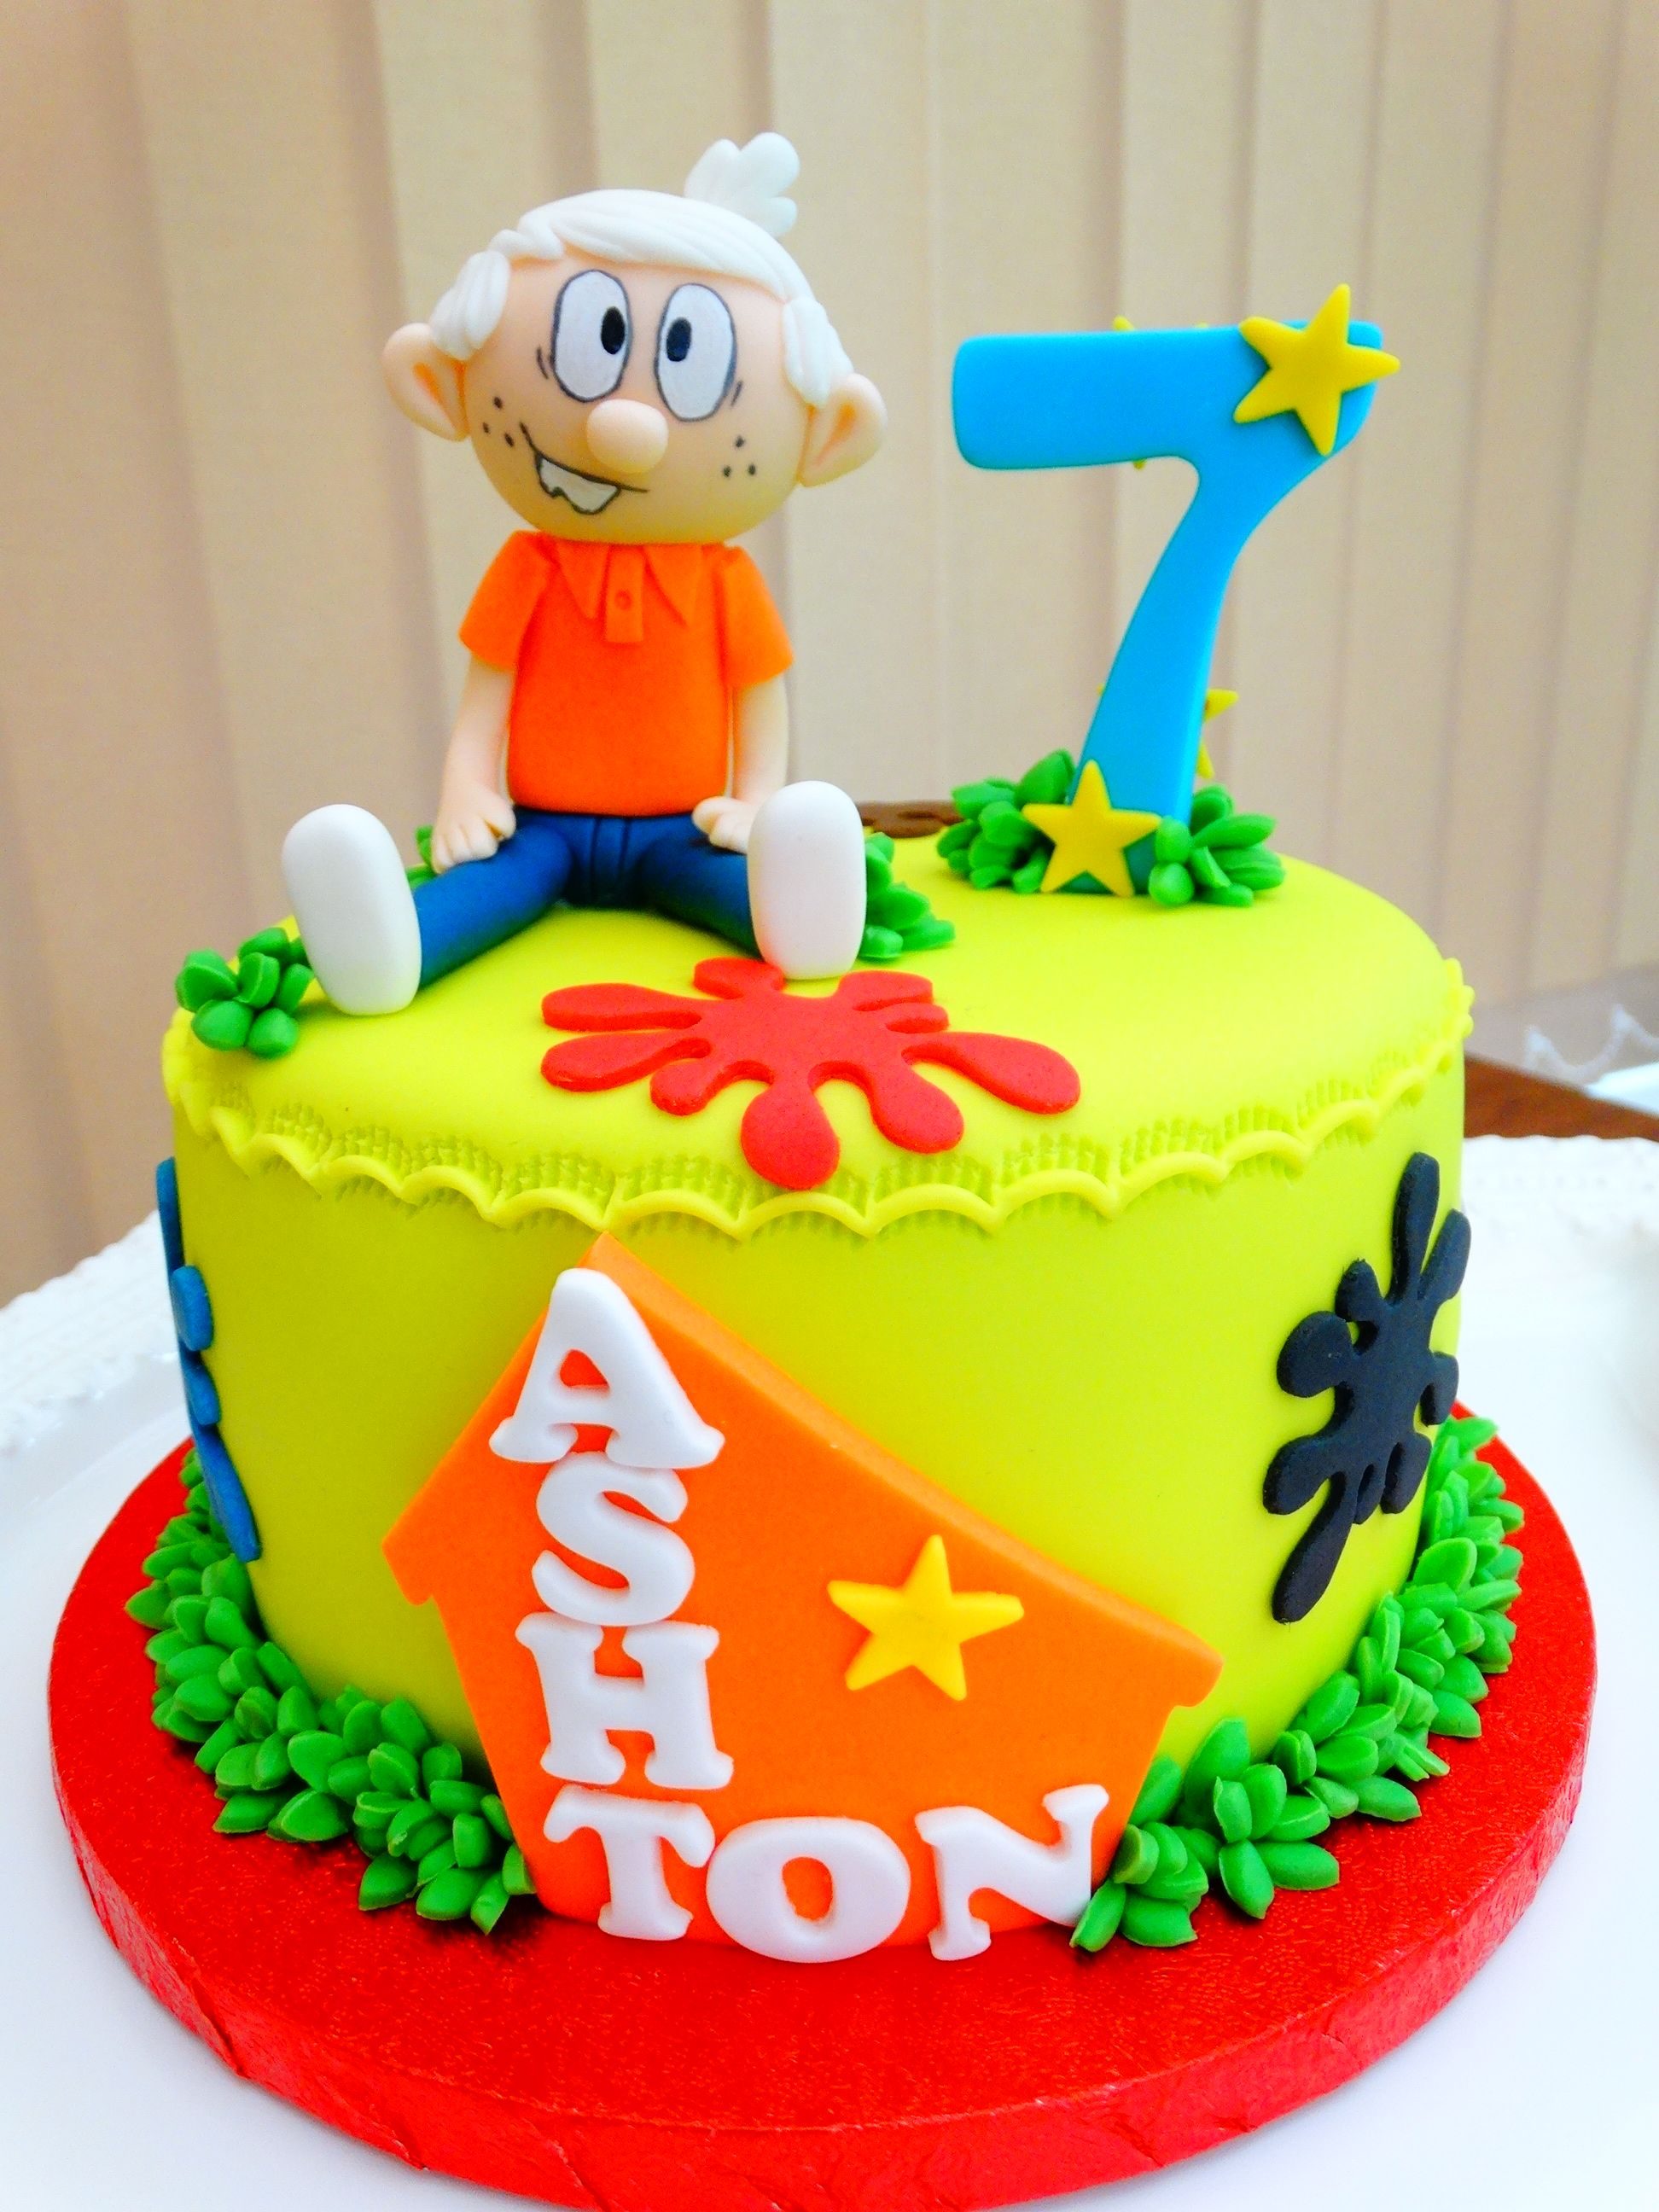 Lincoln From The Loud House Cake Xmcx